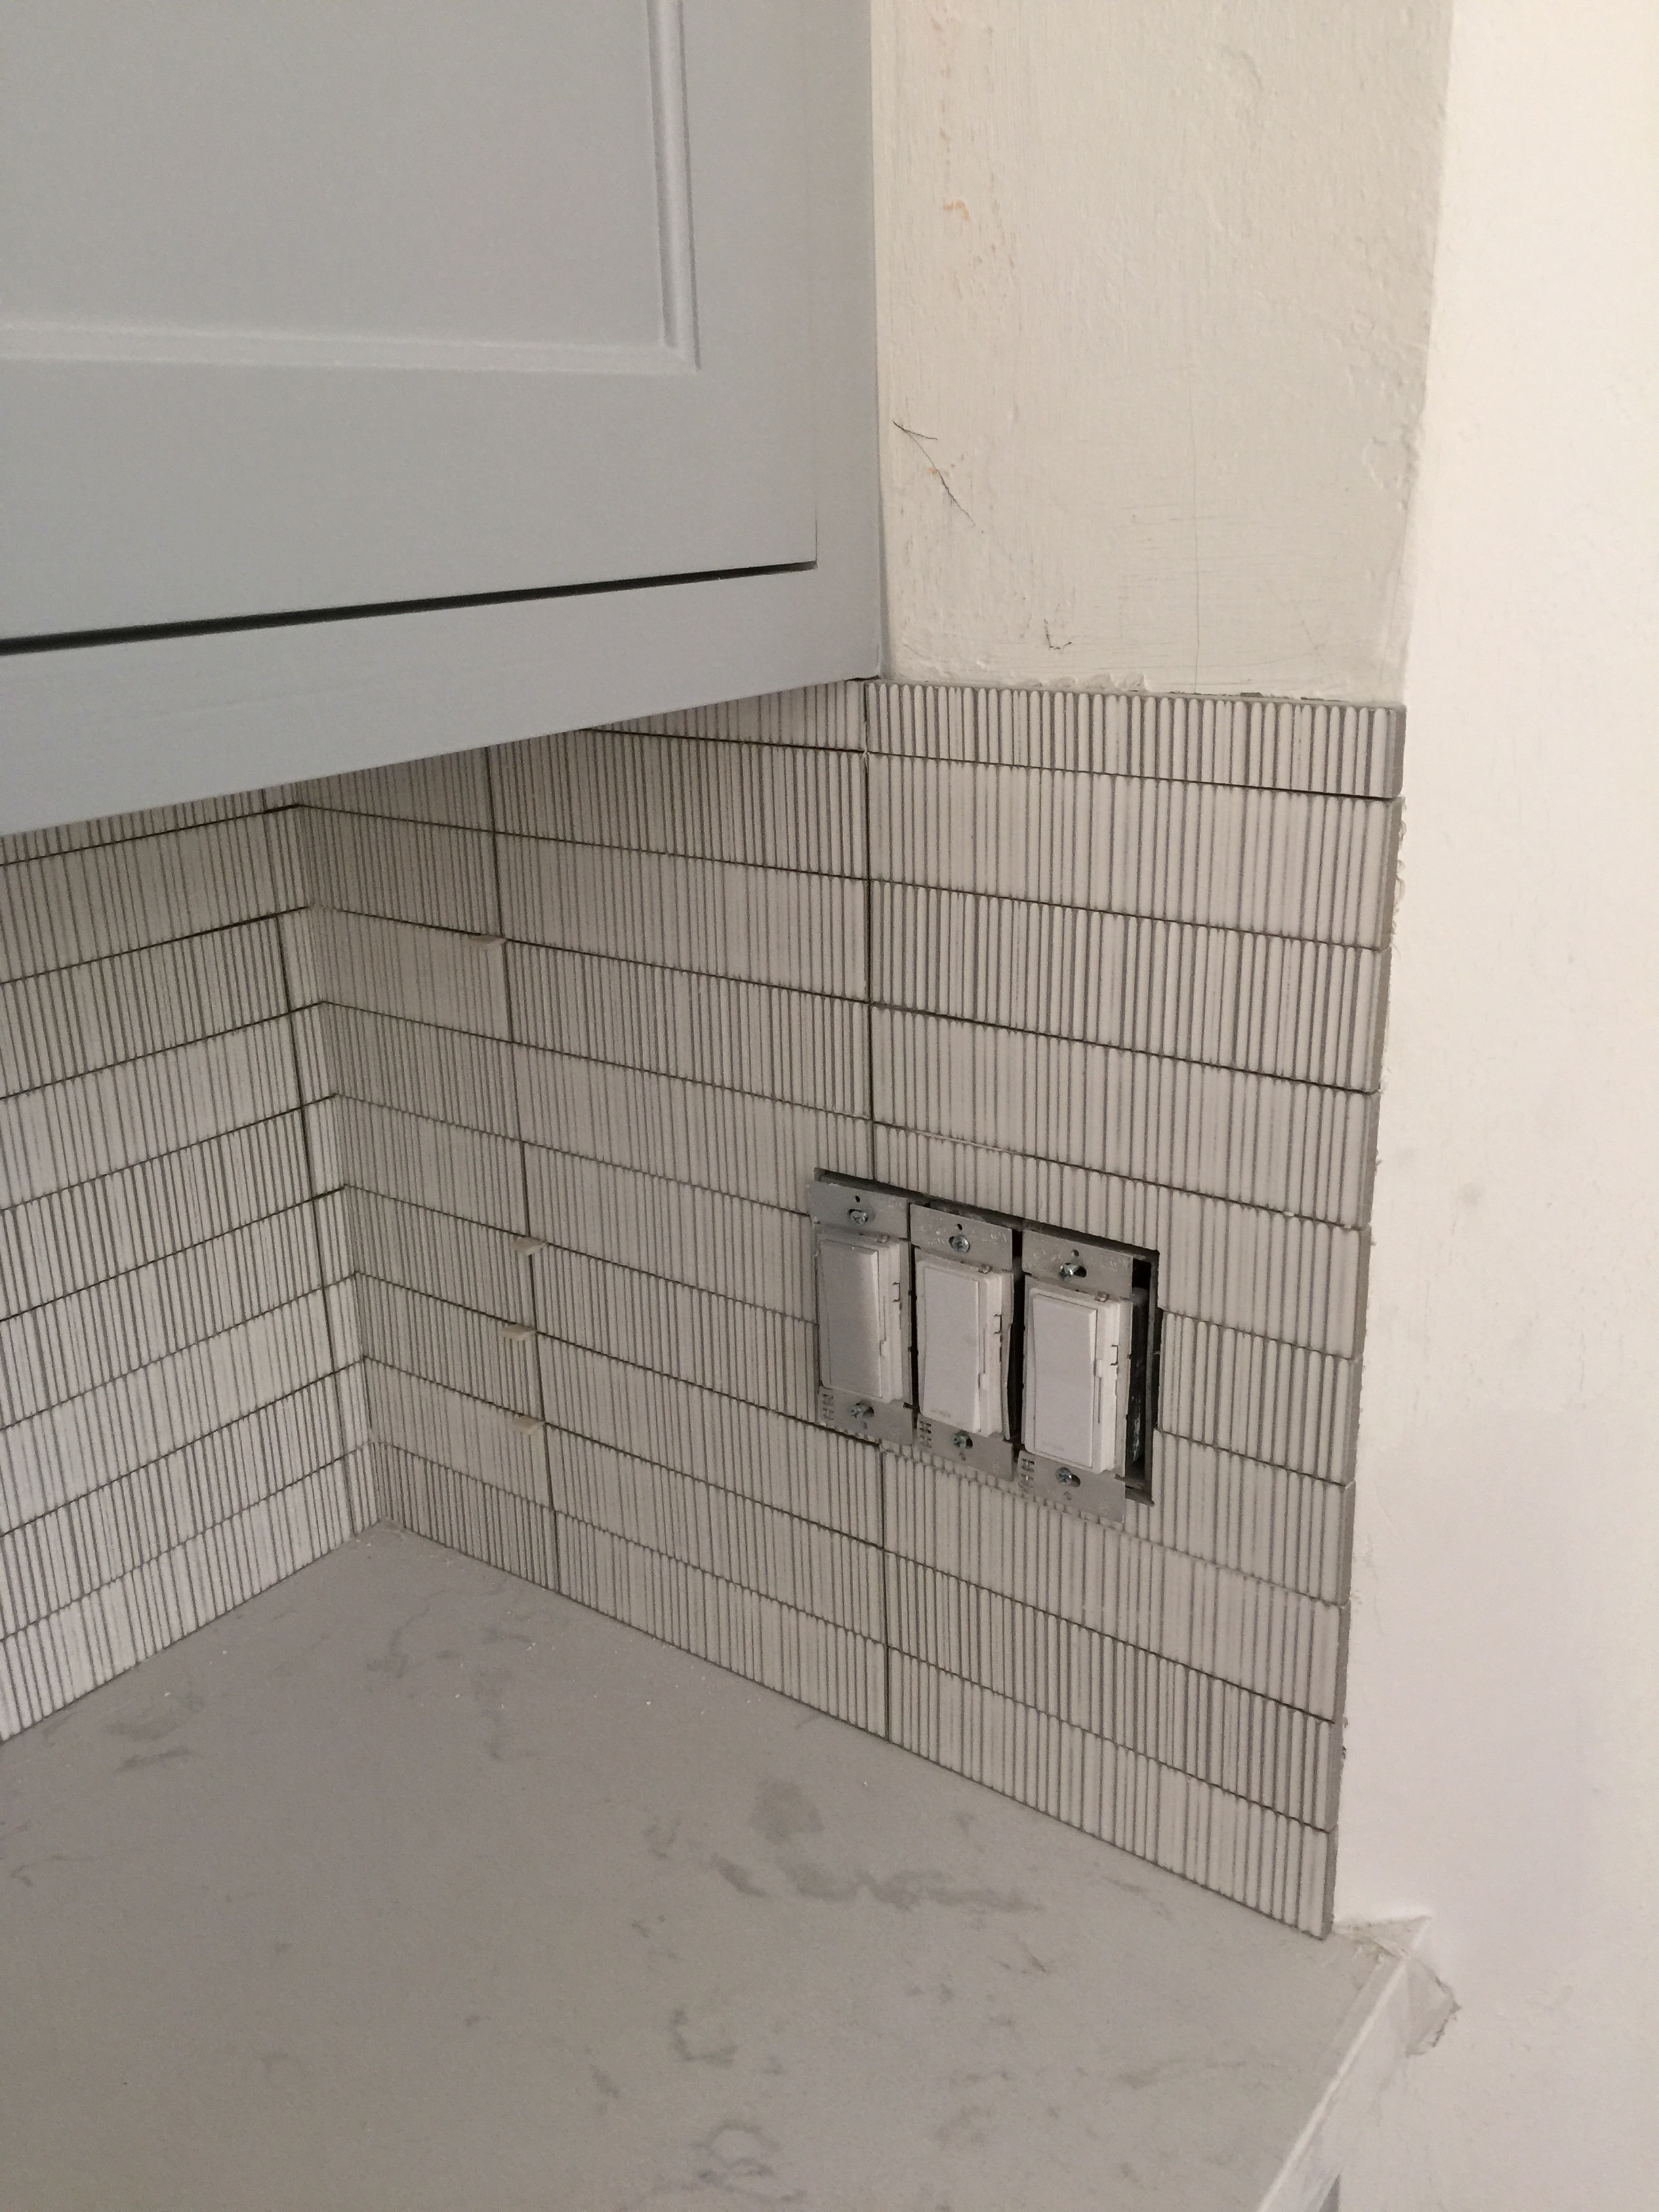 This side backsplash was ripped out on one of my jobs. The tile installer went a little crazy wrapping the corner and didn't look at my specs. :-(  #tilebacksplash #sidesplash